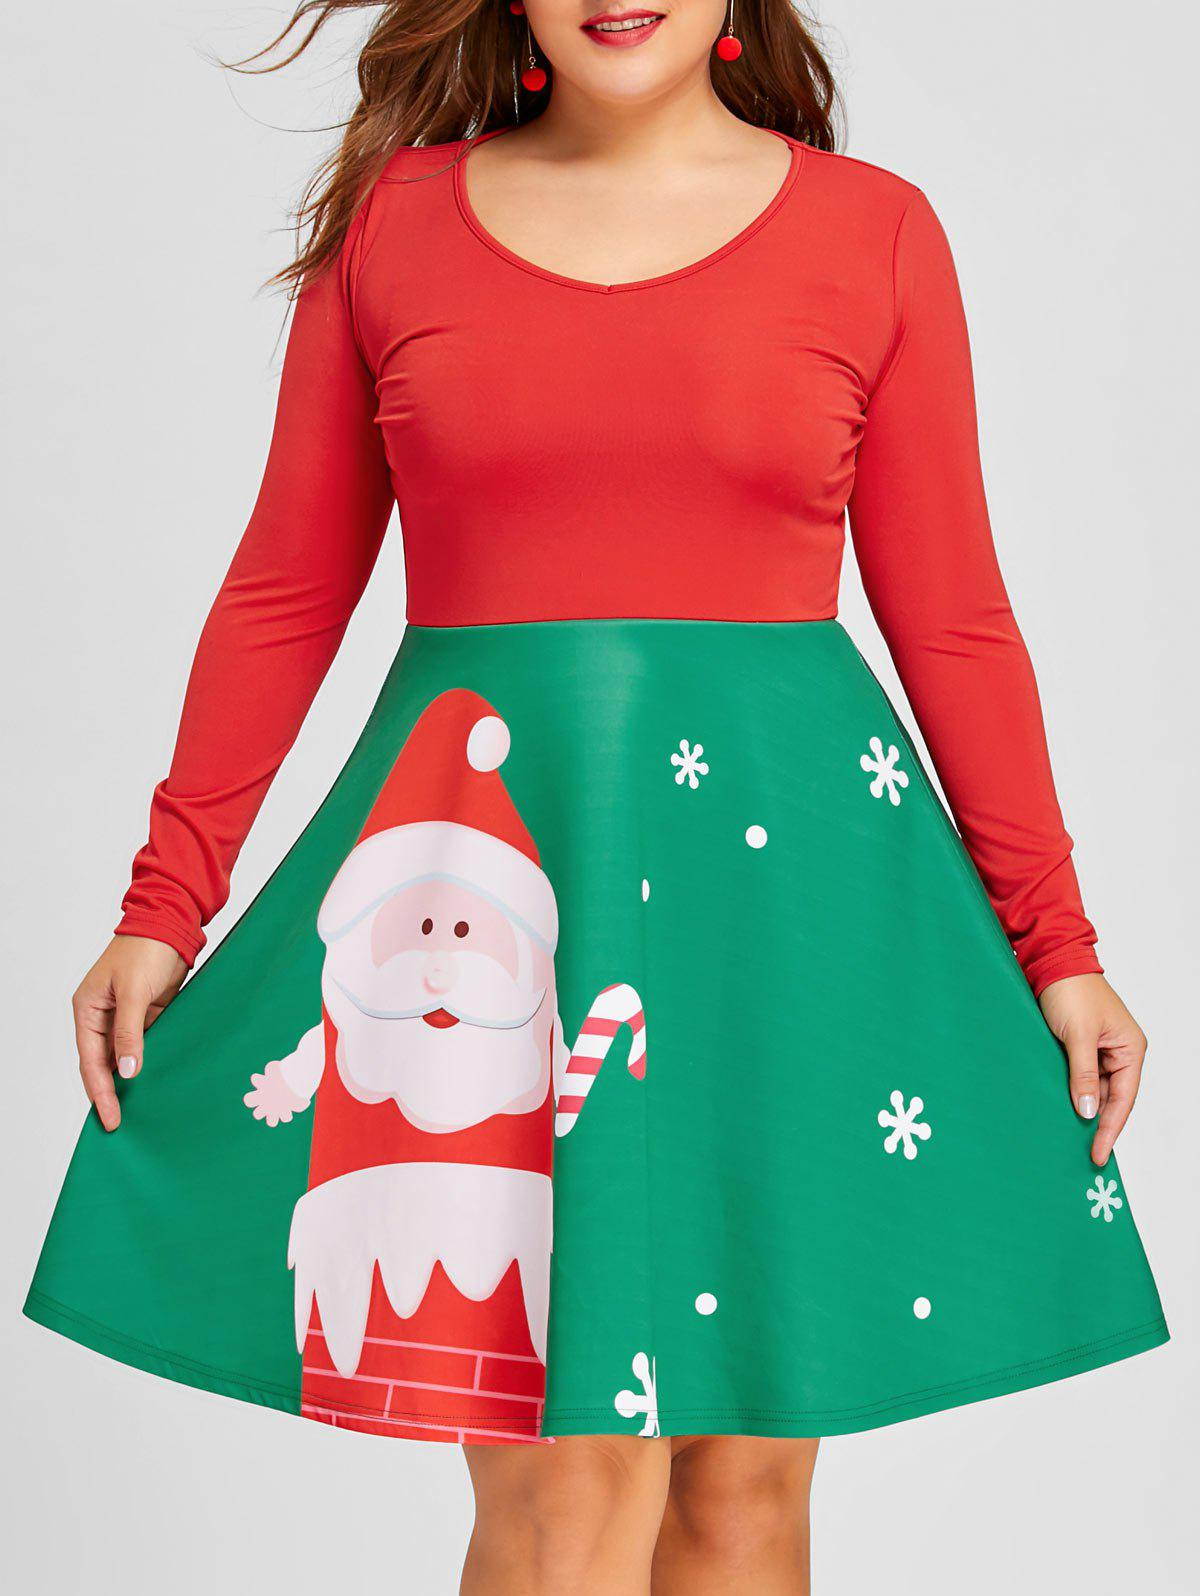 Plus Size Christmas Long Sleeve Santa Print DressWOMEN<br><br>Size: 2XL; Color: RED AND GREEN; Style: Casual; Material: Polyester,Spandex; Silhouette: A-Line; Dresses Length: Mini; Neckline: Round Collar; Sleeve Length: Long Sleeves; Pattern Type: Character; With Belt: No; Season: Fall,Spring; Weight: 0.4760kg; Package Contents: 1 x Dress;